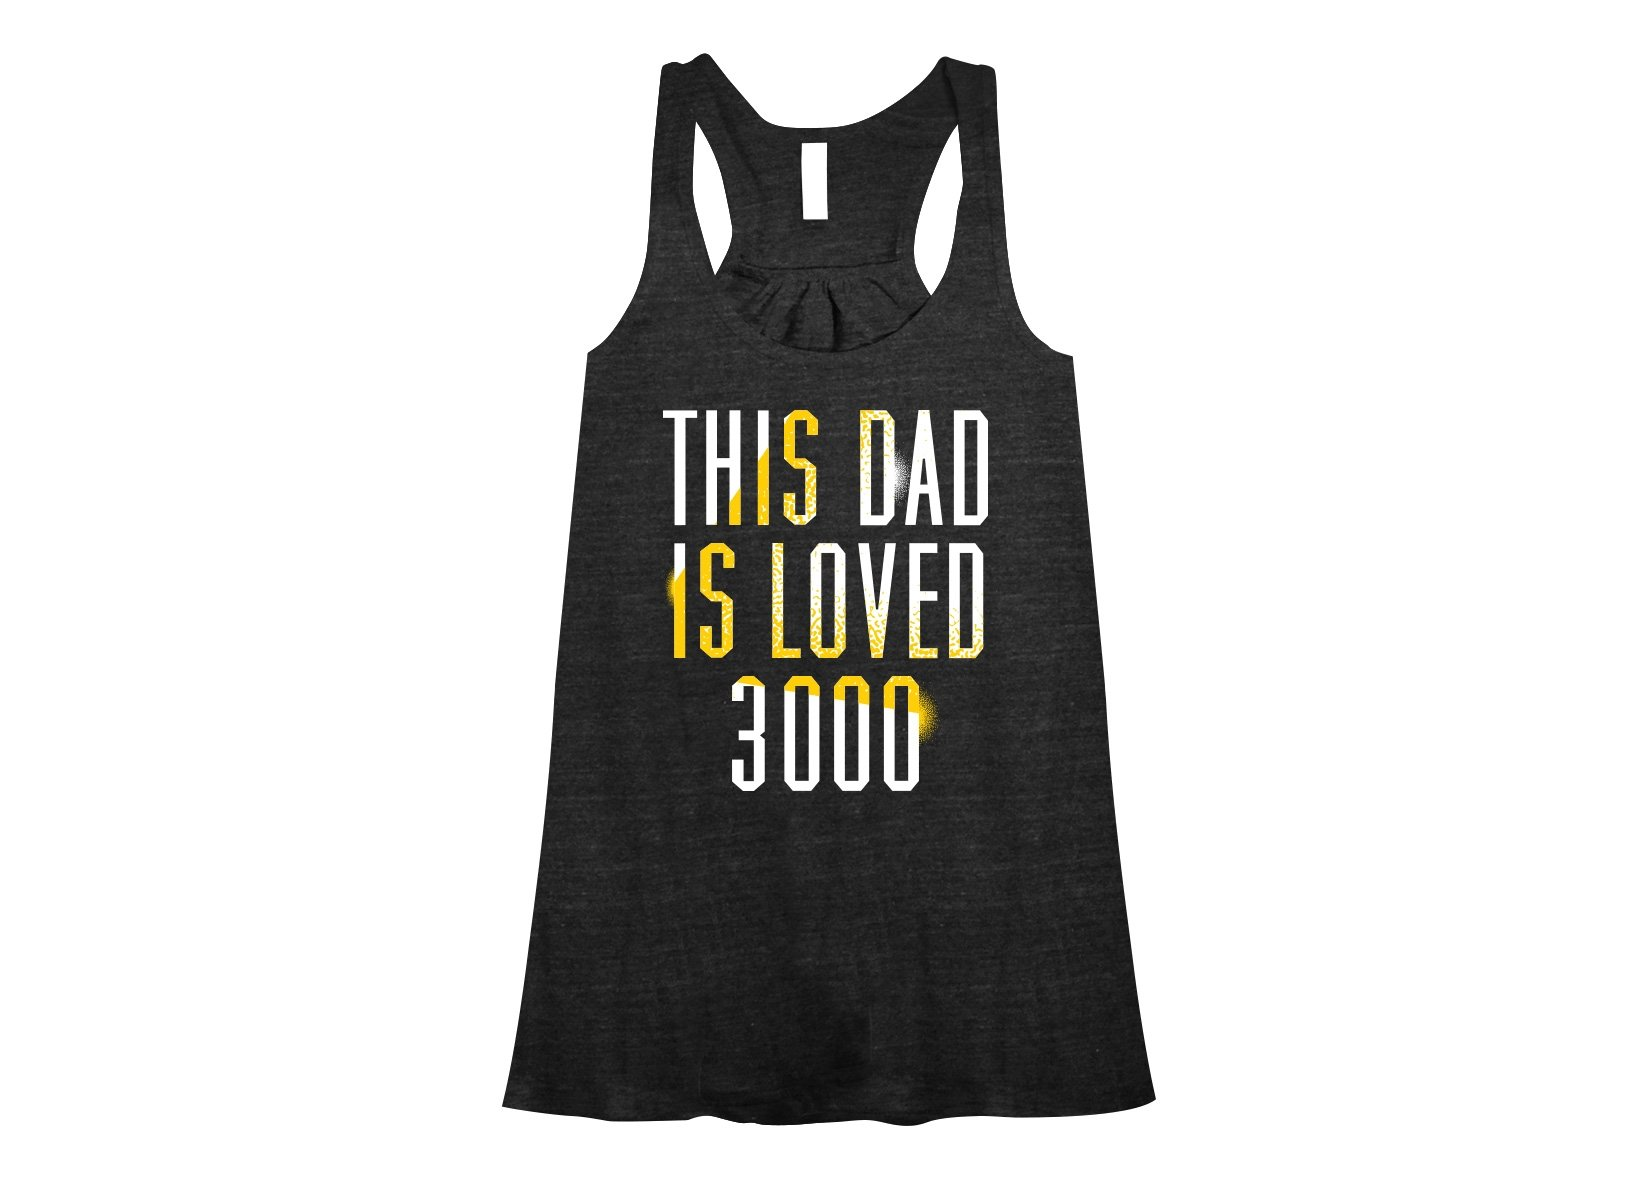 This Dad Is Loved 3000 on Womens Tanks T-Shirt